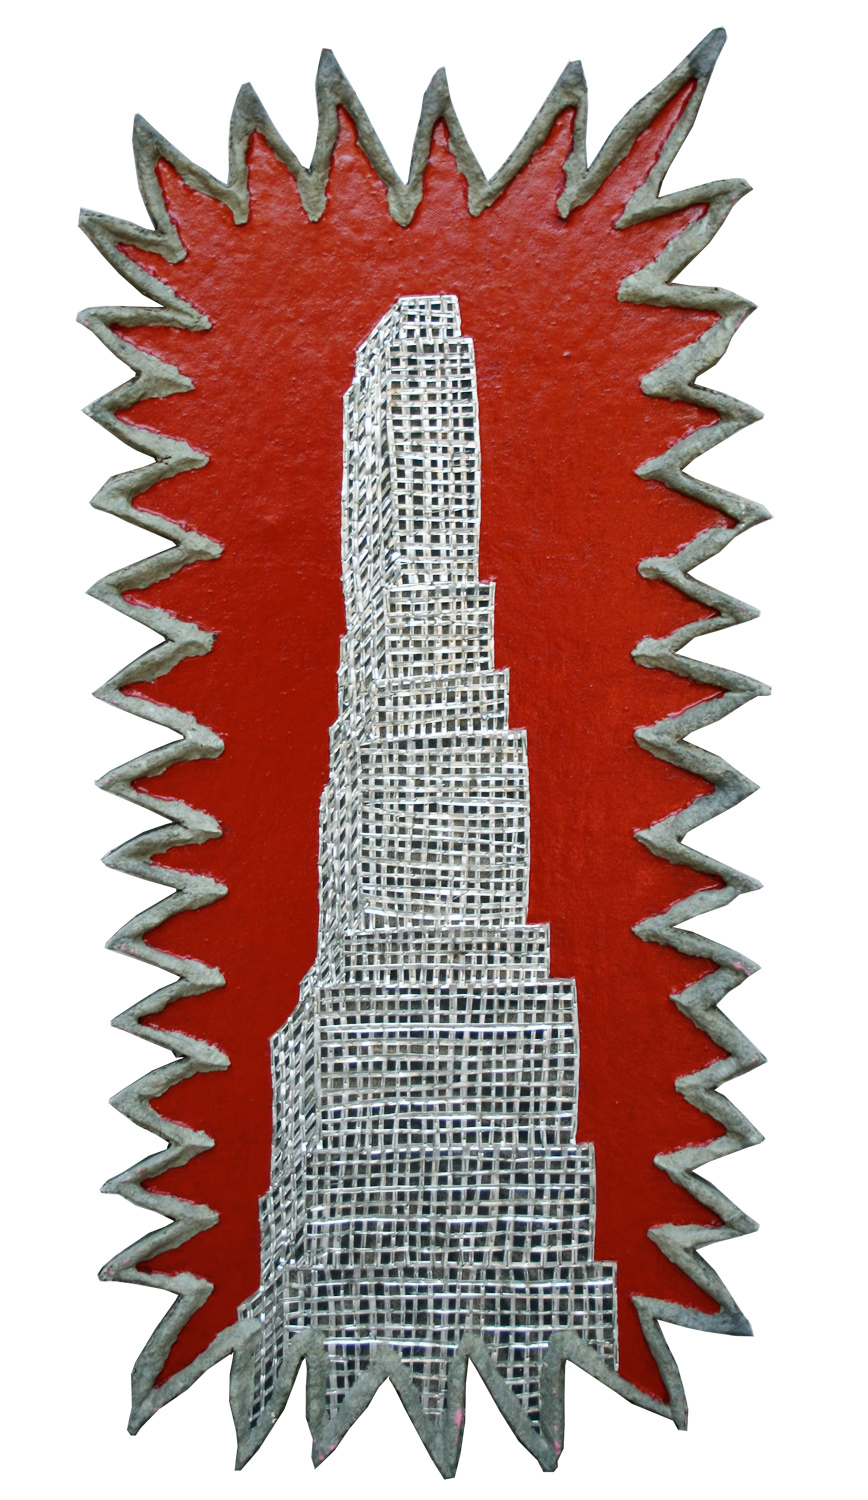 "'zig zag hi rise' ©1988-91, aluminum, enamel, celluclay on wood, 34 1/2"" x 16""."